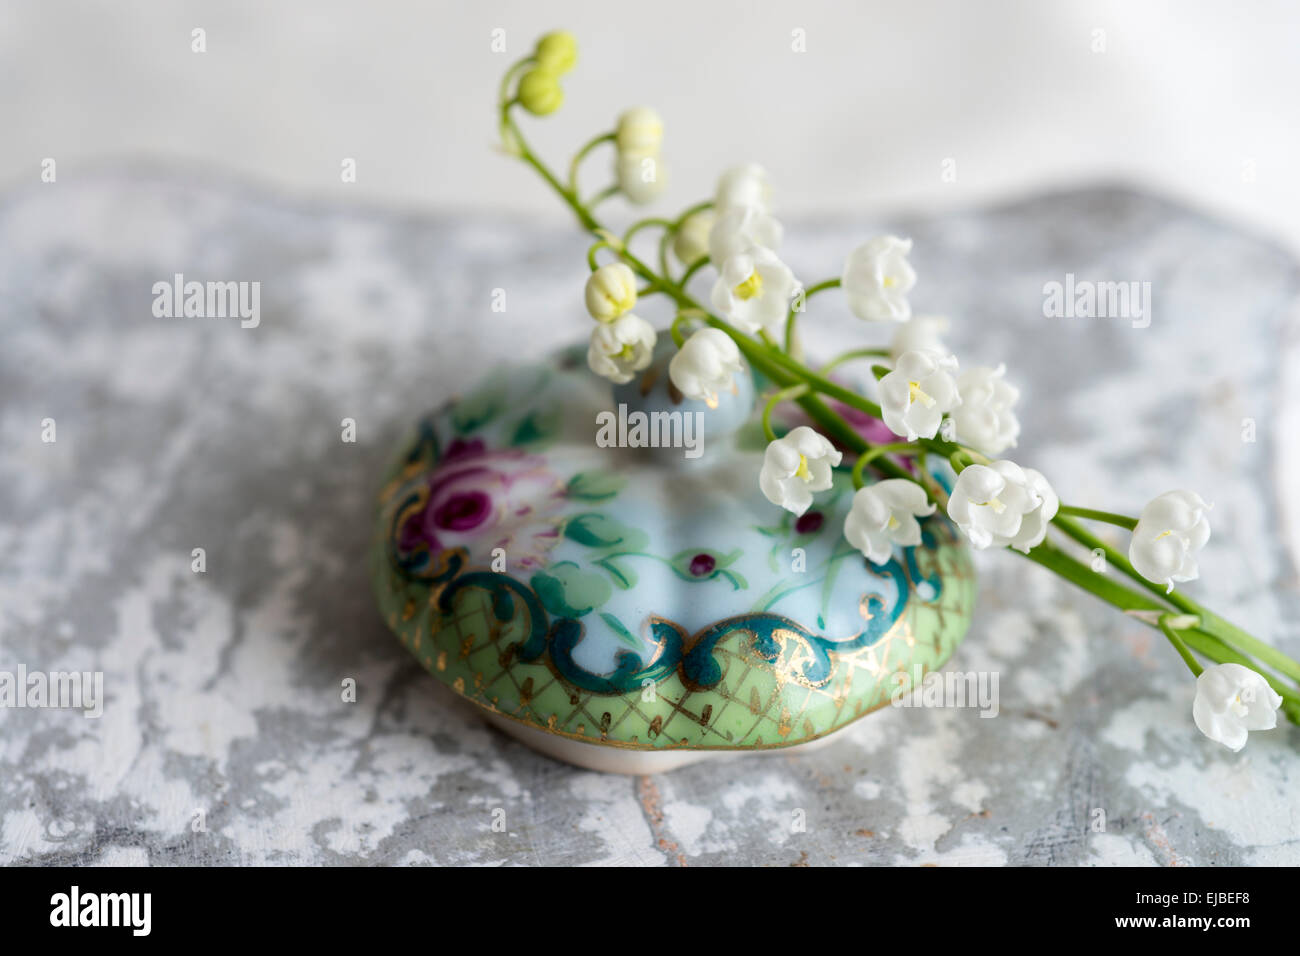 Lily of the Valley flowers (Convallaria majalis) with hand painted lid of bowl - Stock Image